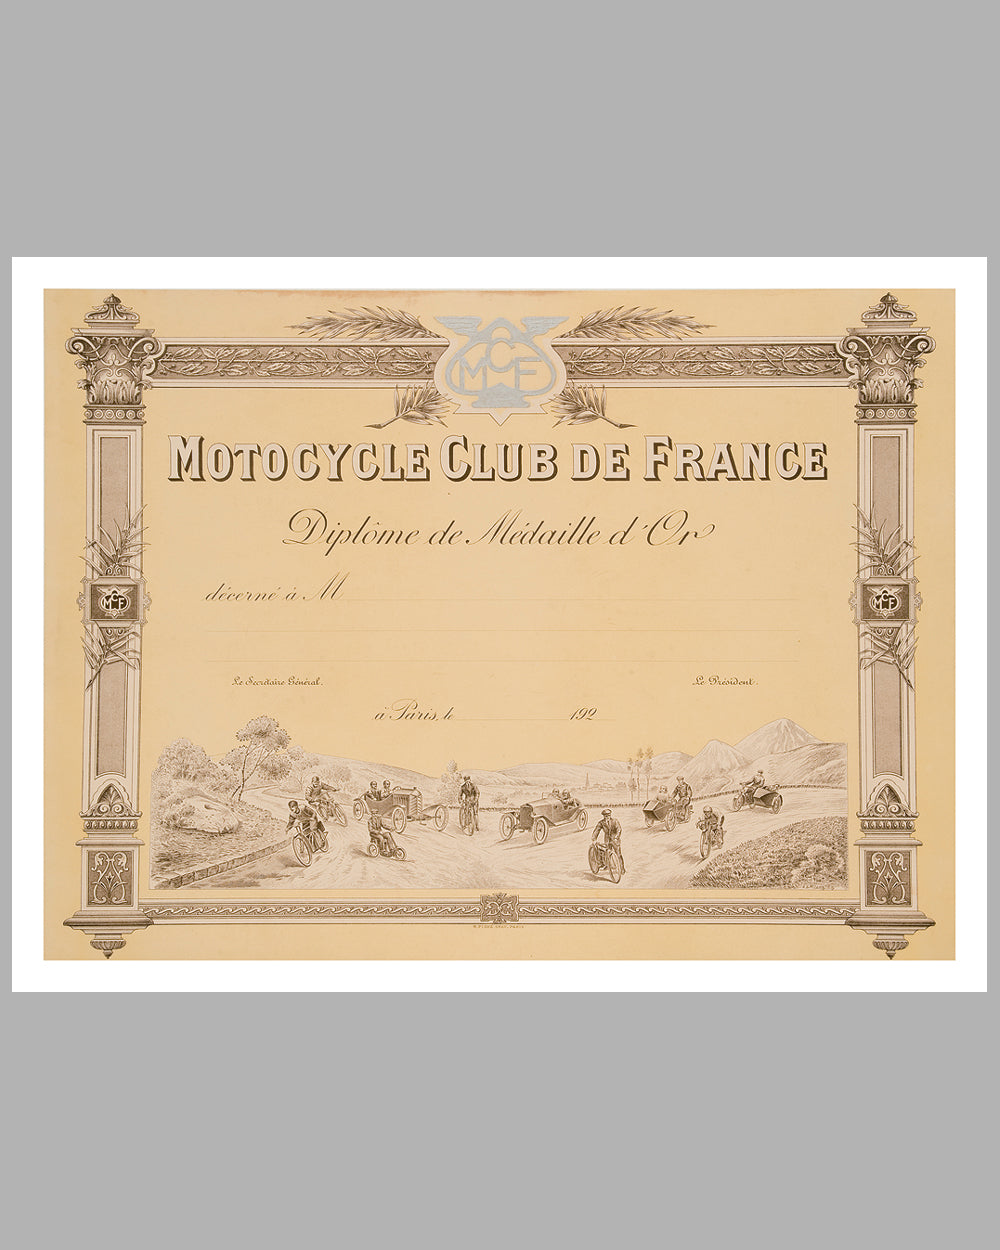 Motocycle Club de France Diplome original by Langlois